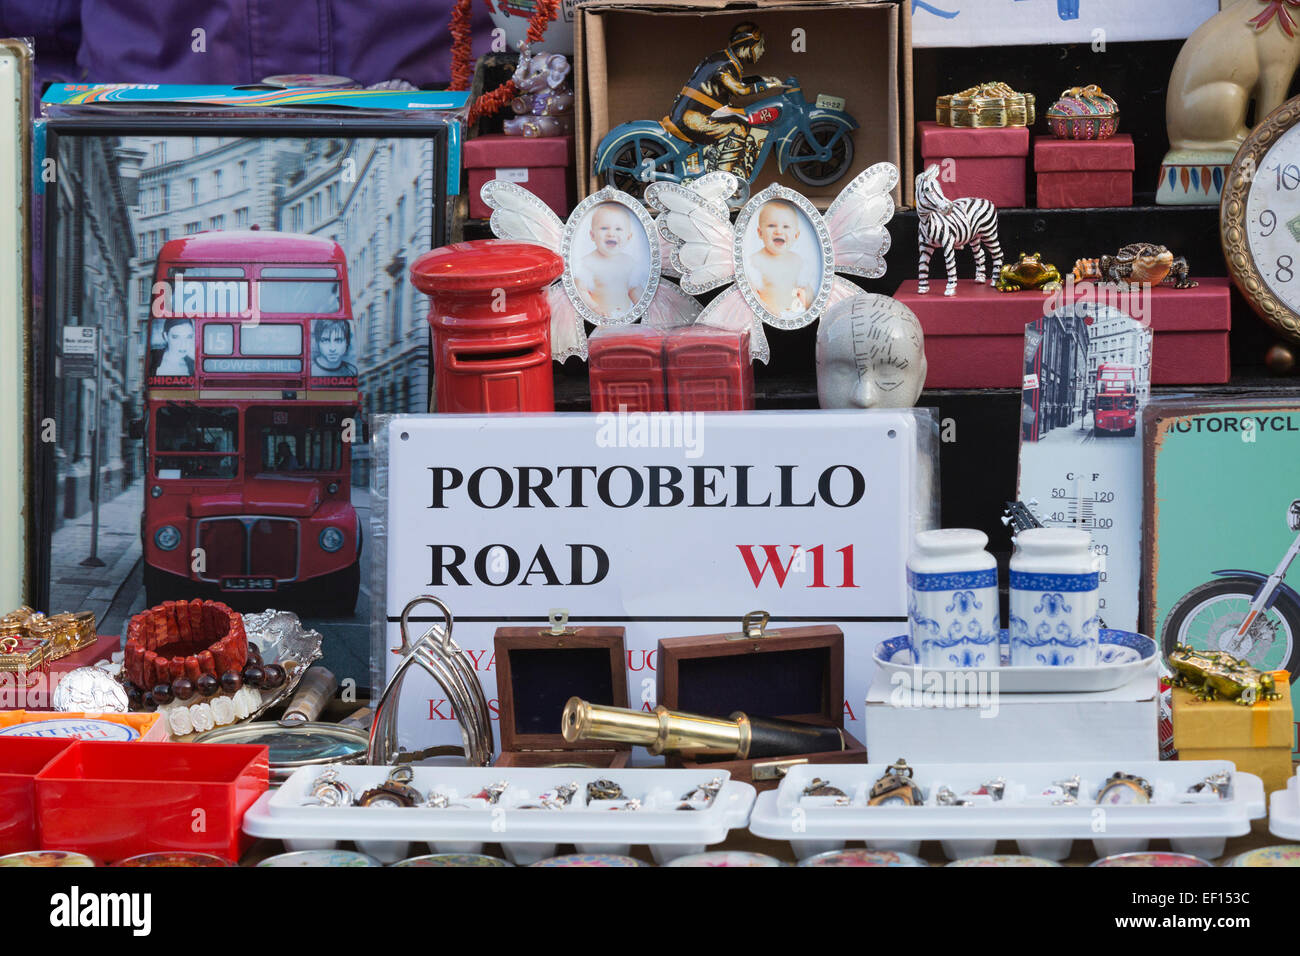 An antique dealer's display at Portobello Market, London, England, United Kingdom - Stock Image